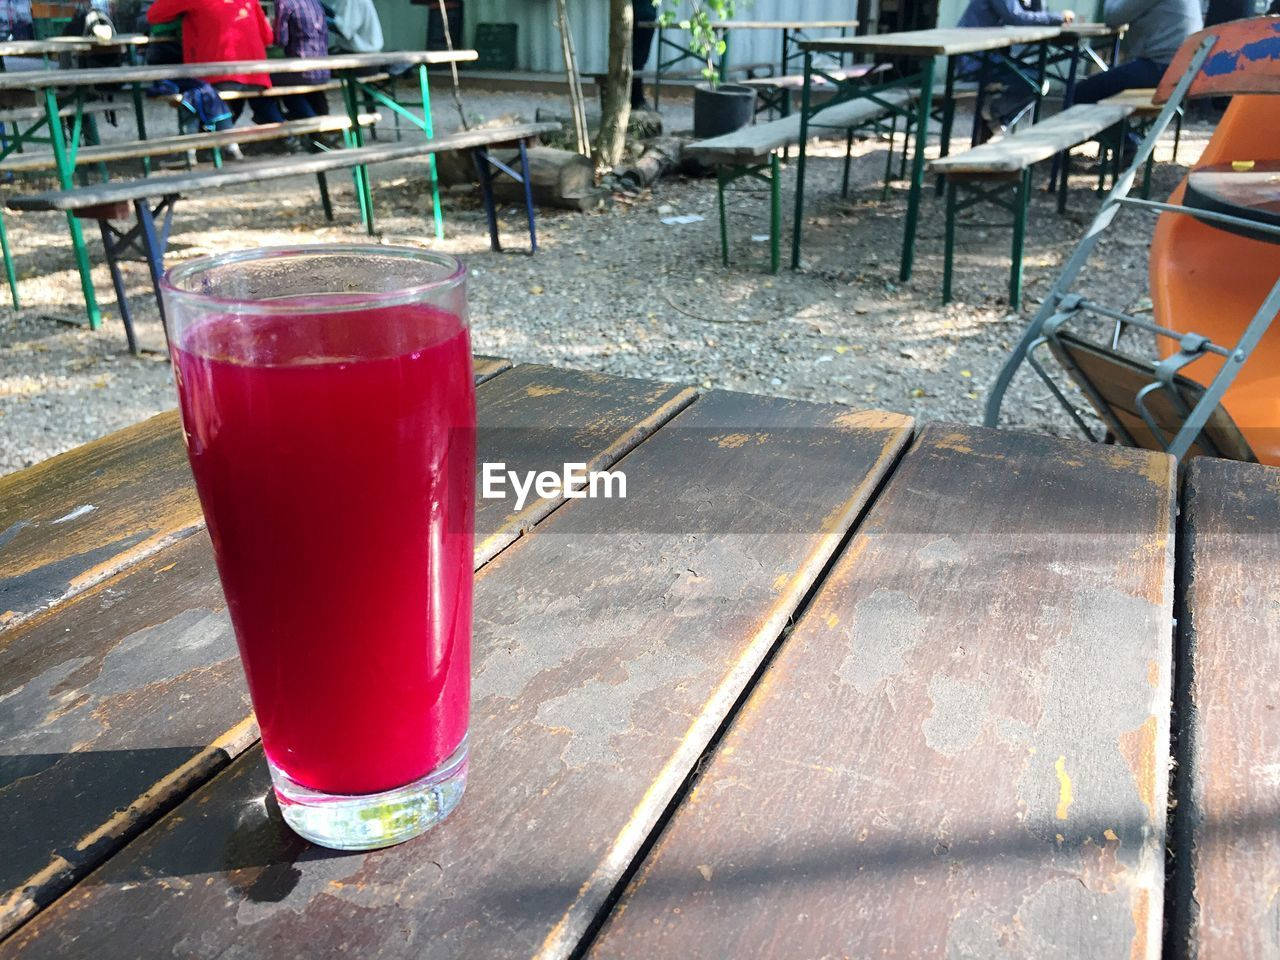 Close-Up Of Beetroot Juice In Glass On Table At Outdoor Restaurant